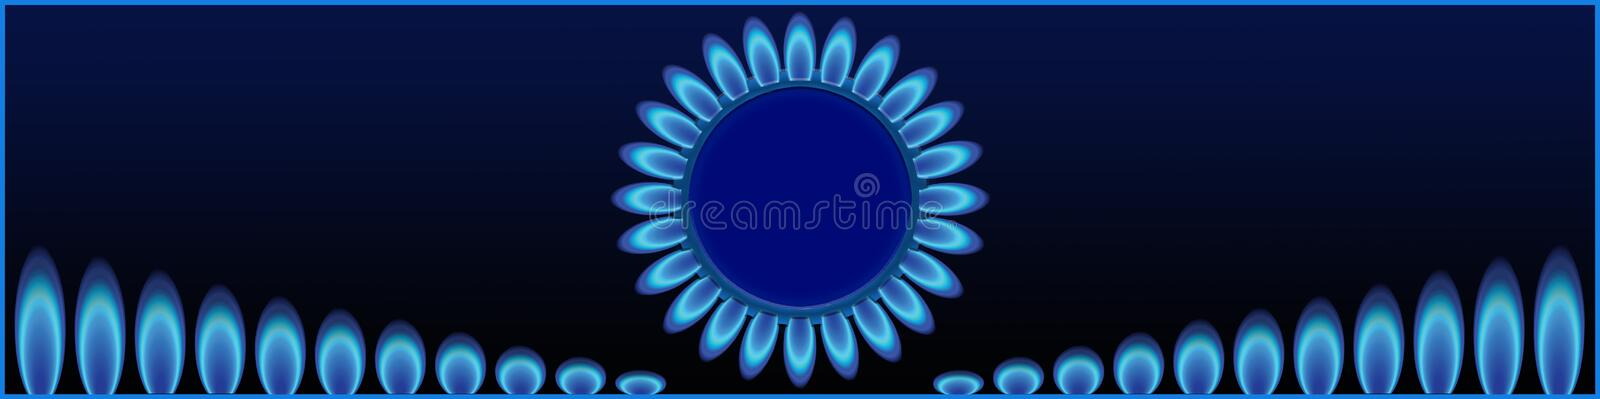 Cap for the site sale of industrial gases. royalty free stock images